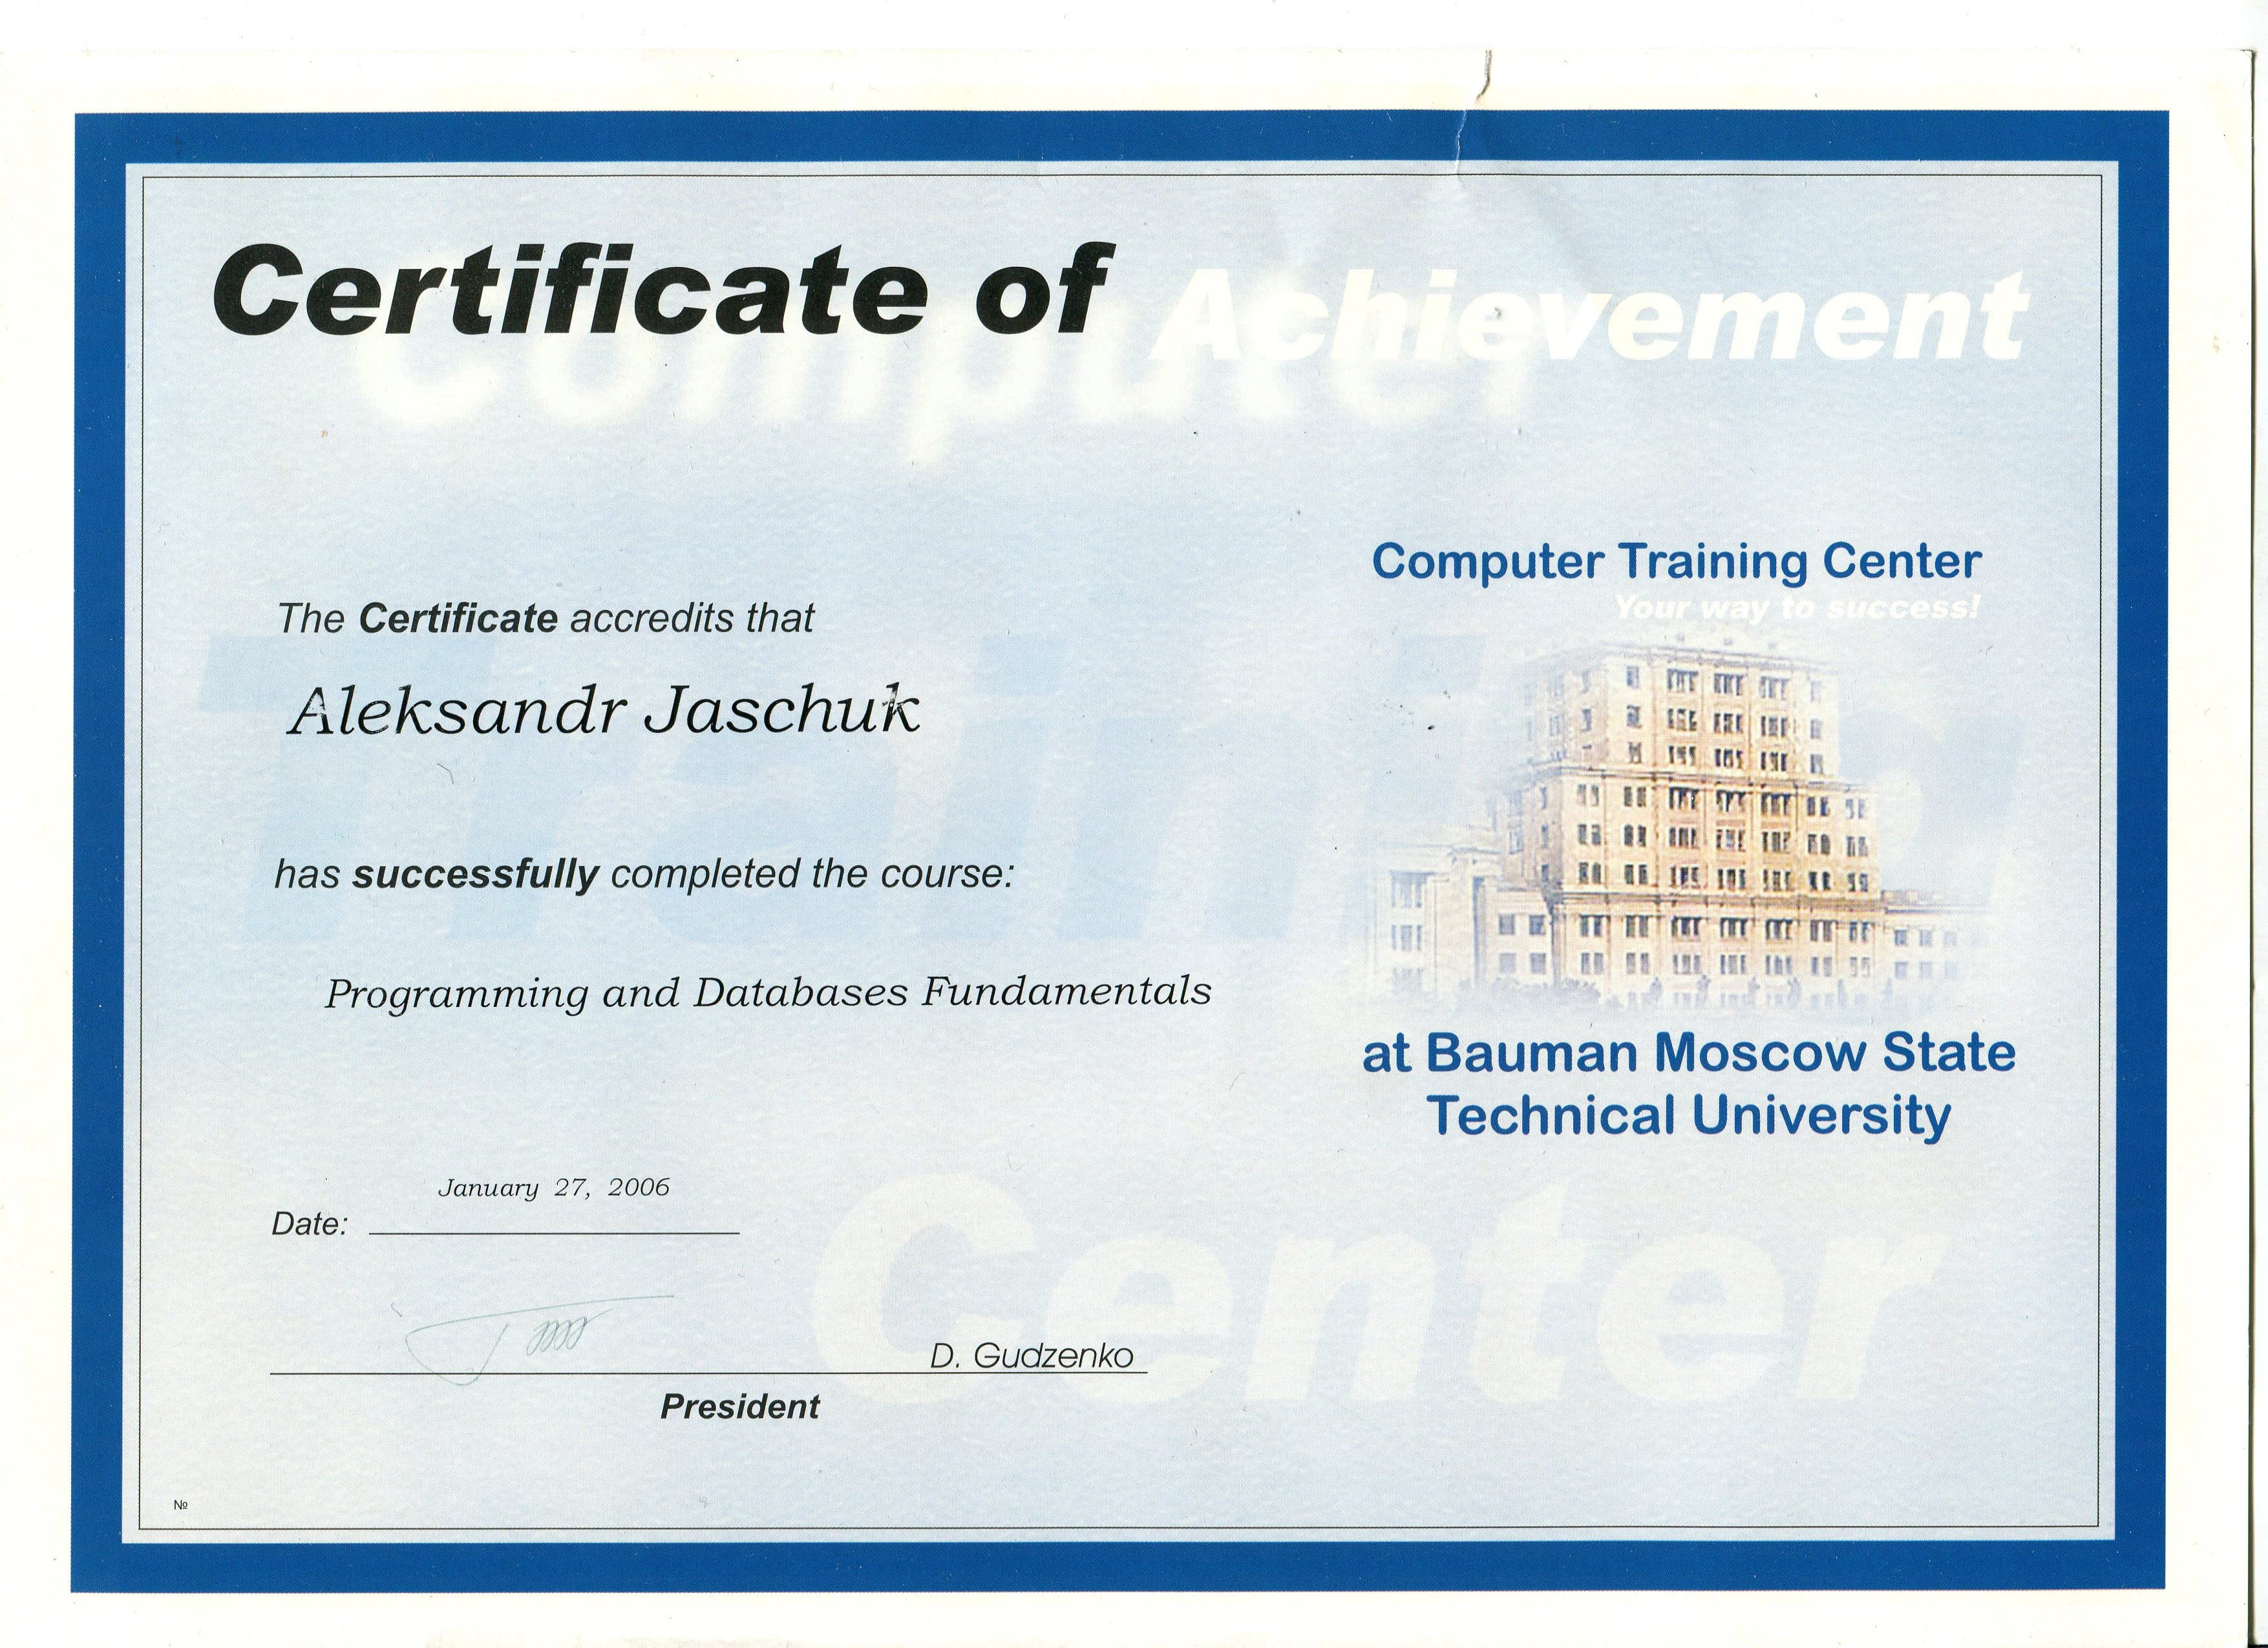 Bauman Moscow State Technical University. Programming and Databases Fundamentals.